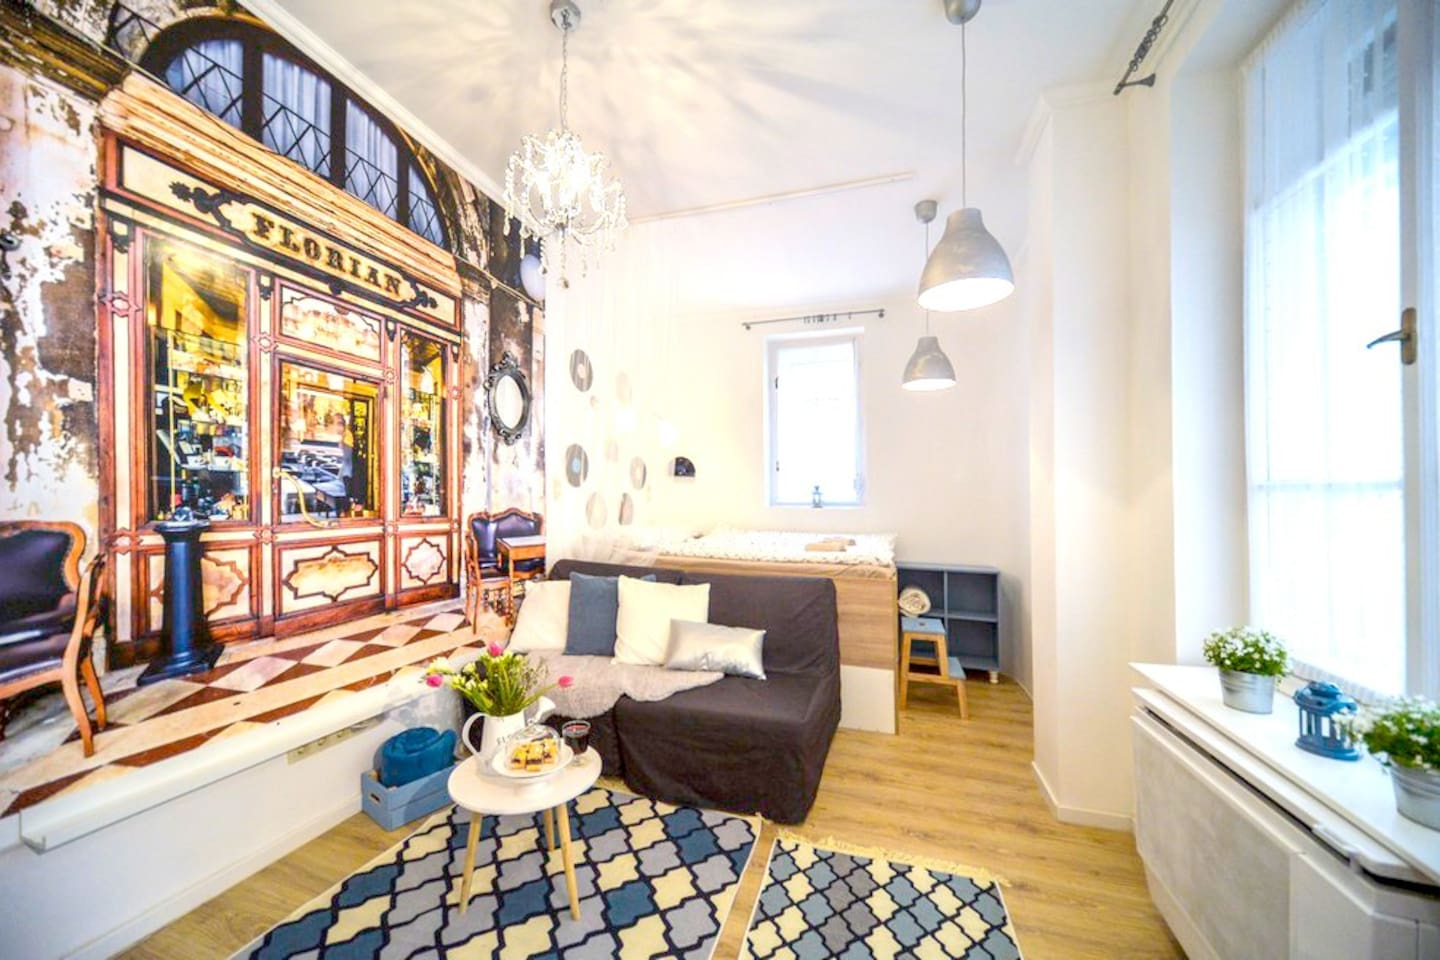 Charming and fully equipped Vintage Studio close to the Andrassy Ave and the Ruin Pub Dist, yet, very quiet. It is ideal up to 3 guests, Lonely Planet Guide Book is provided.